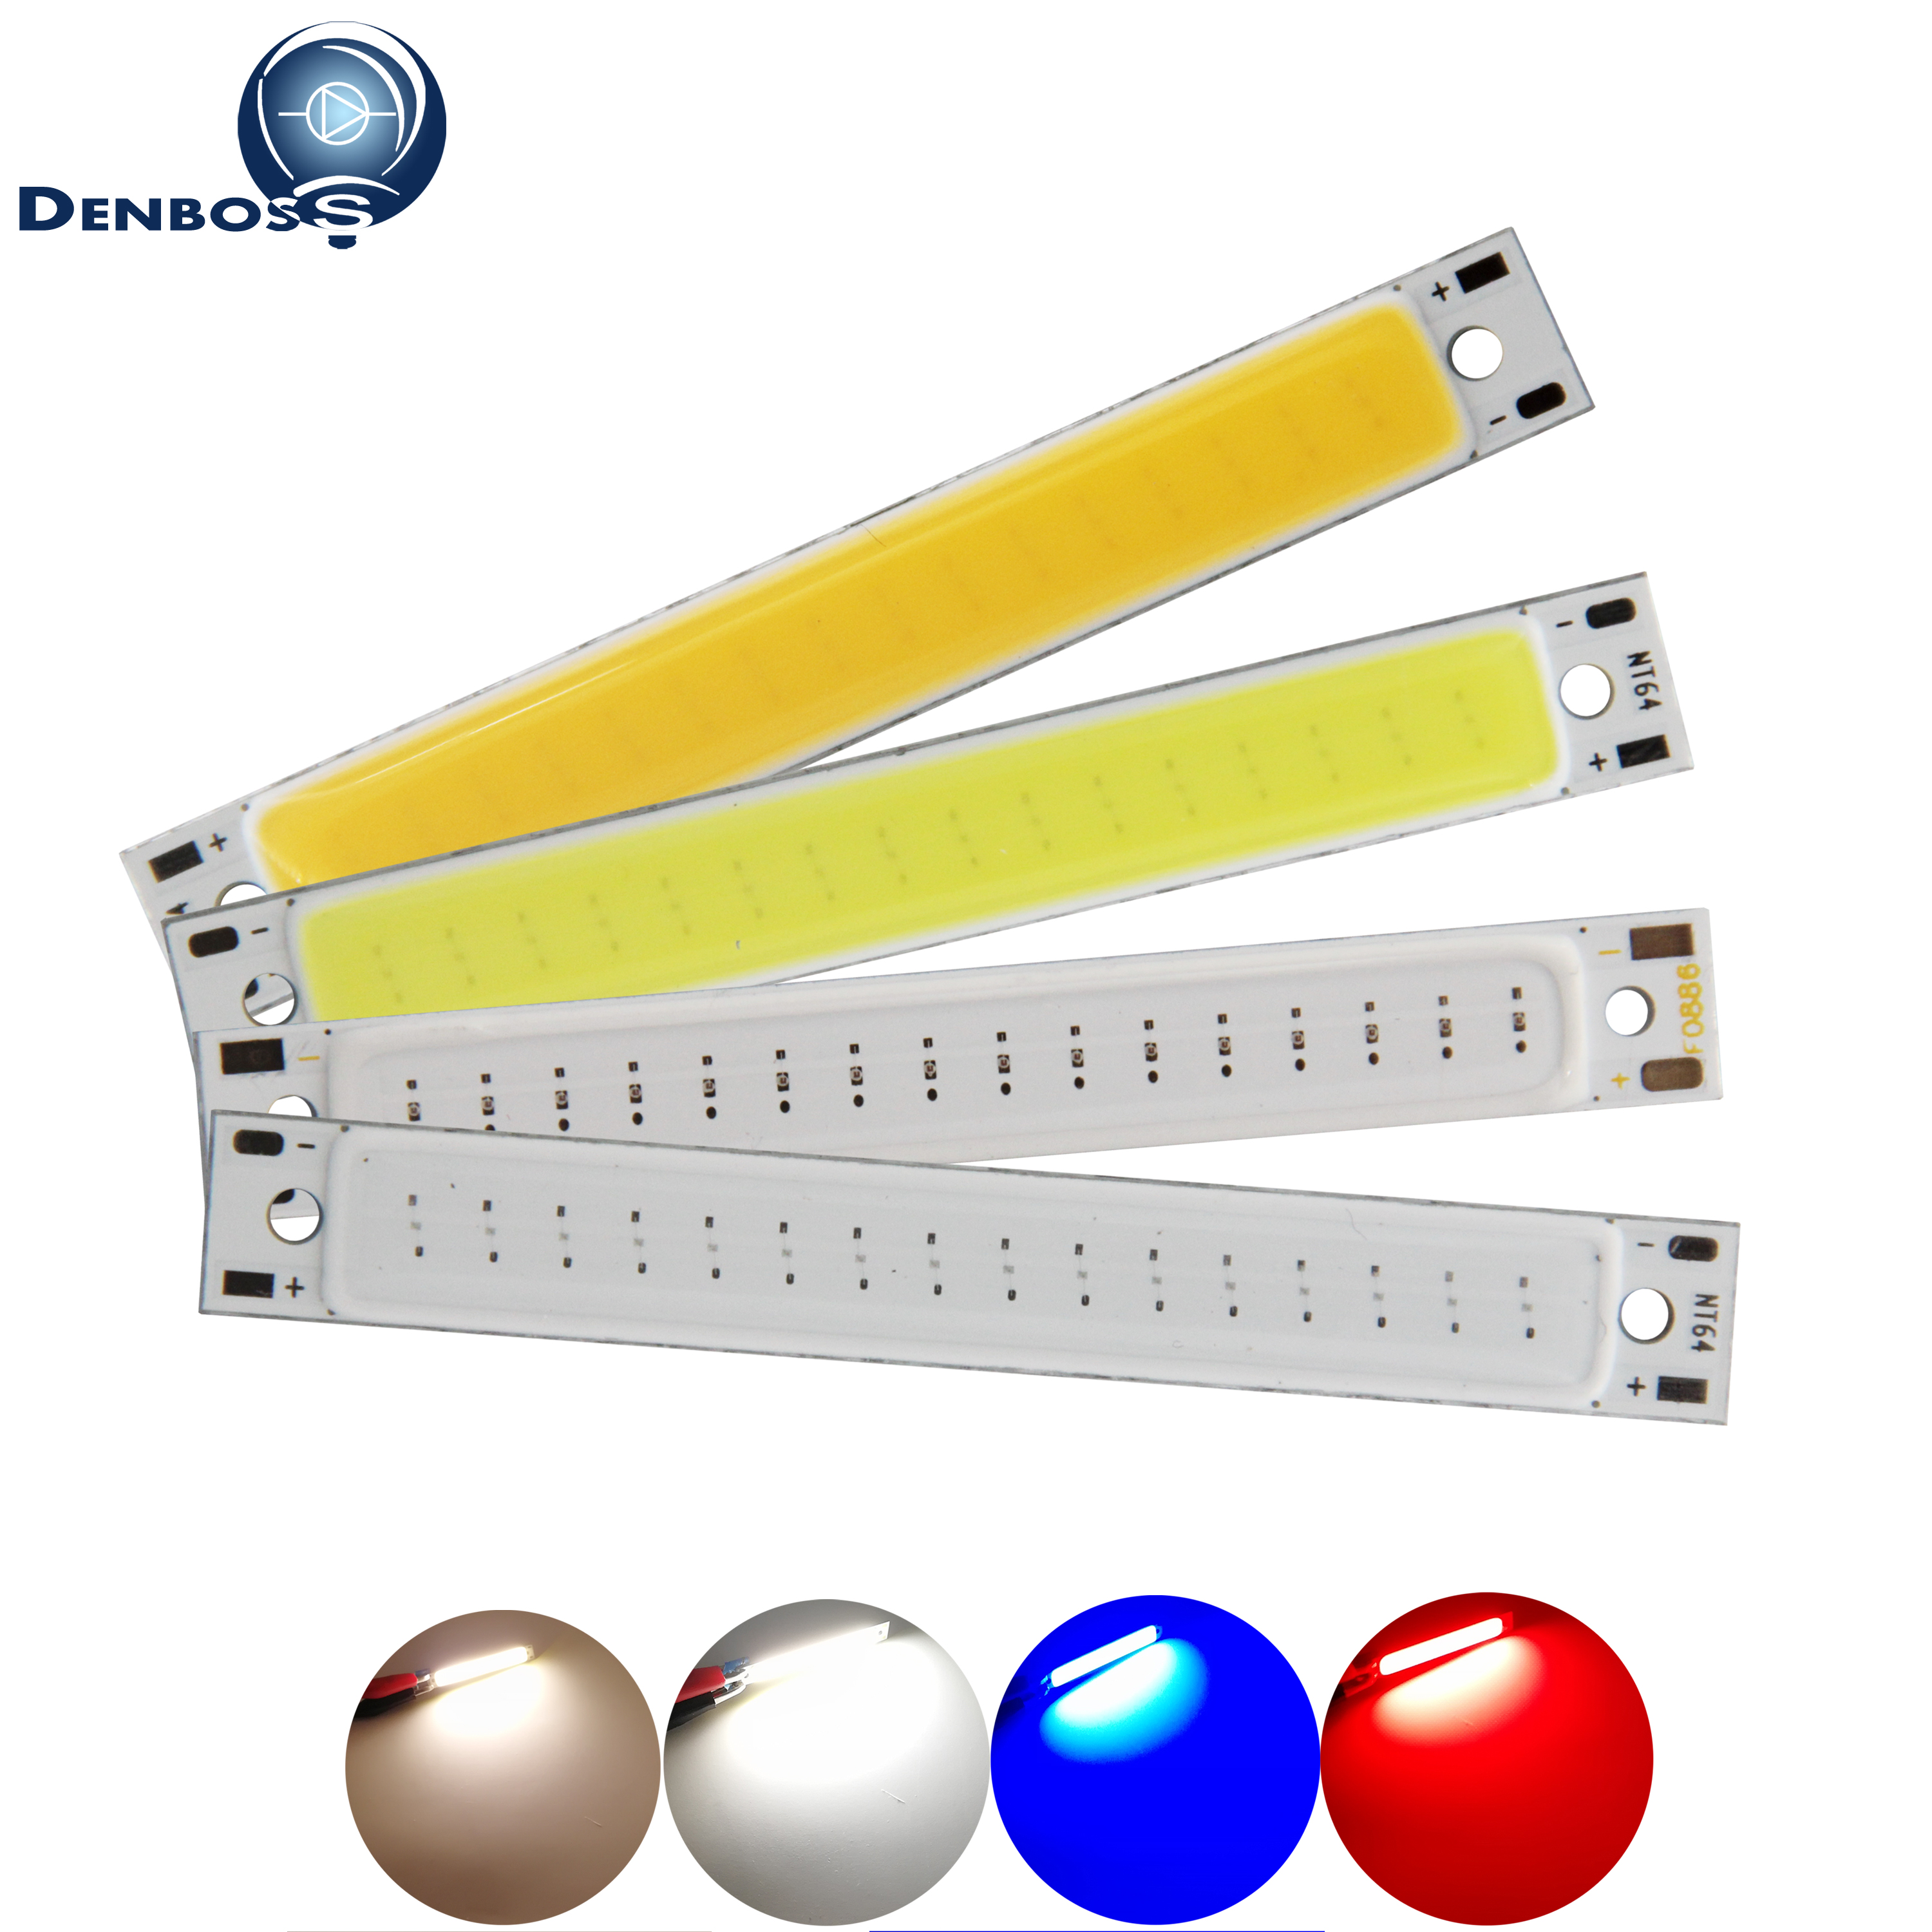 Hot sale DENBOSS manufacturer 60x8mm <font><b>LED</b></font> COB <font><b>Strip</b></font> for work lamp 1.5W 3W 2V 3V DC Warm White Blue Red COB <font><b>LED</b></font> Light for DIY image